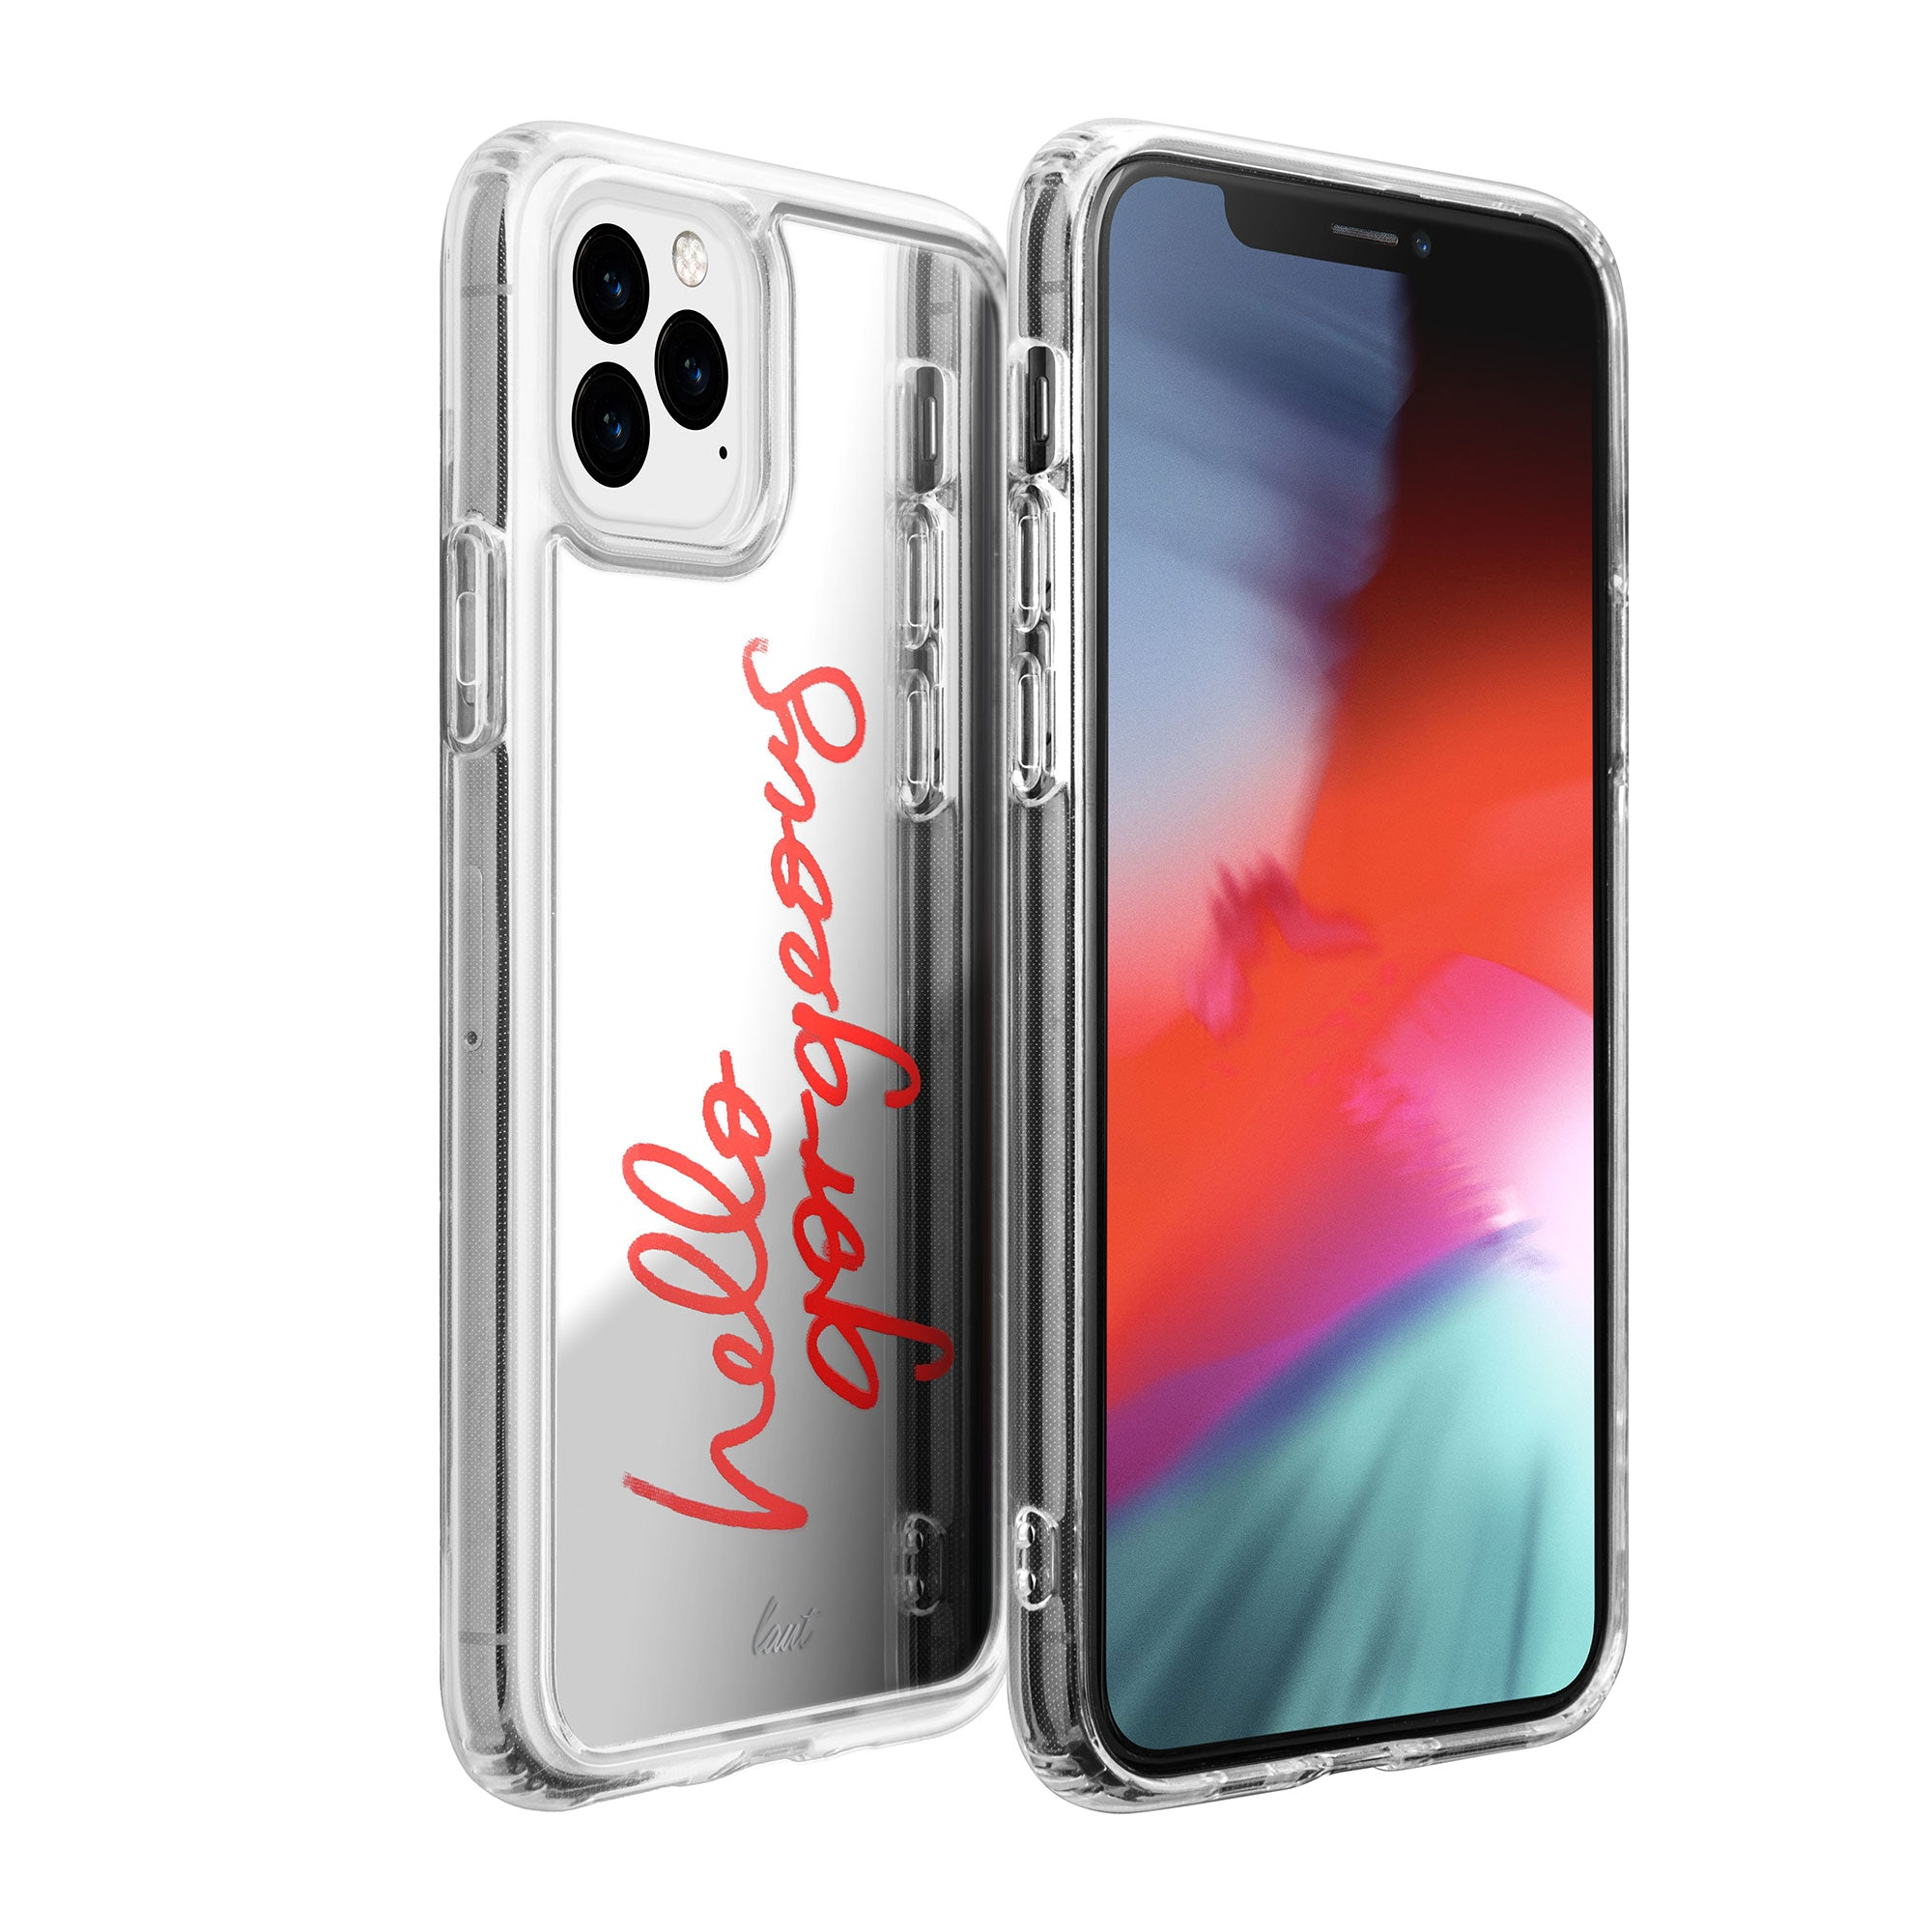 LAUT-MIRROR for iPhone 11 | iPhone 11 Pro | iPhone 11 Pro Max-Case-iPhone 11 / iPhone 11 Pro / iPhone 11 Pro Max